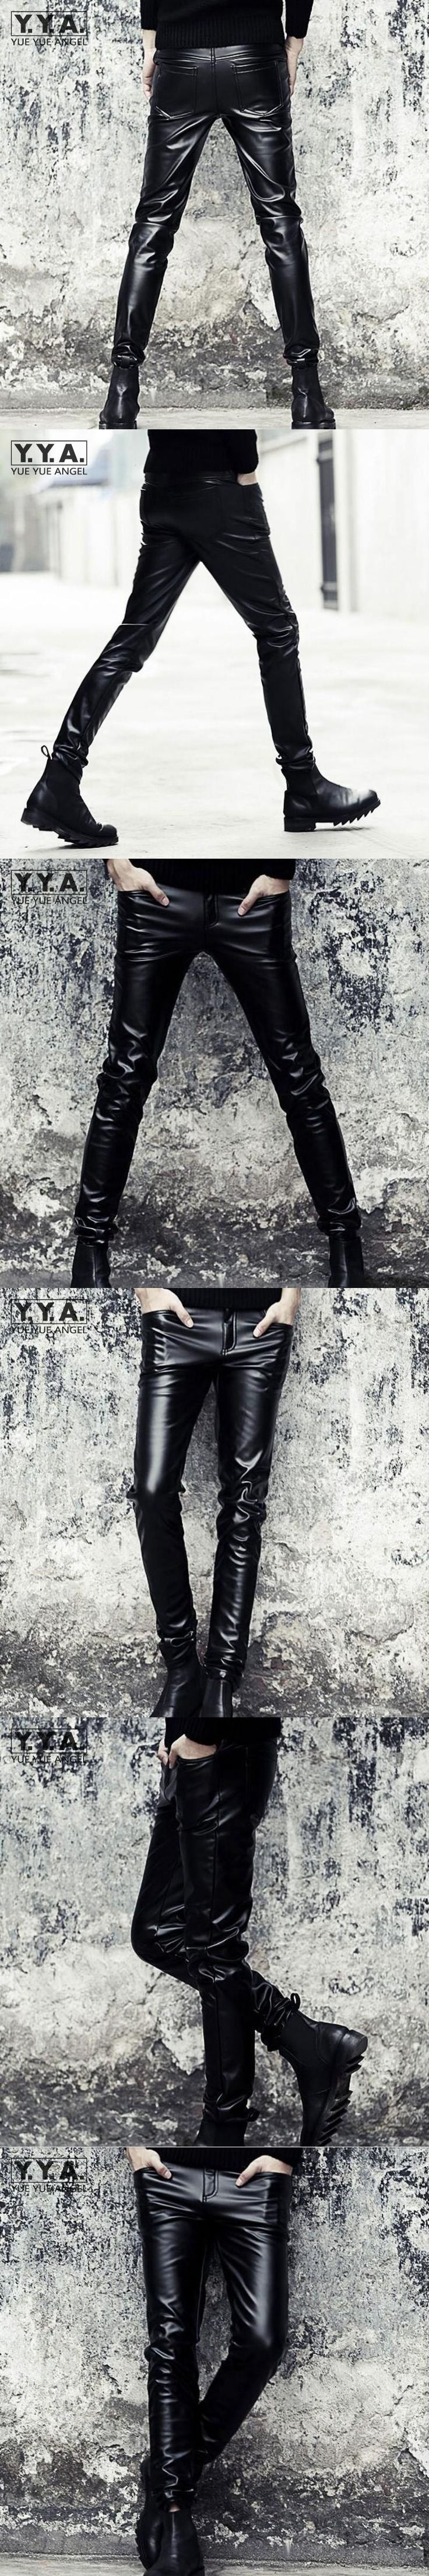 Punk Mens Slim Fit Trousers Motorcycle Skinny Faux Leather Pencil Pants Fashion Black Full Length PU Leather Pants Free Shipping